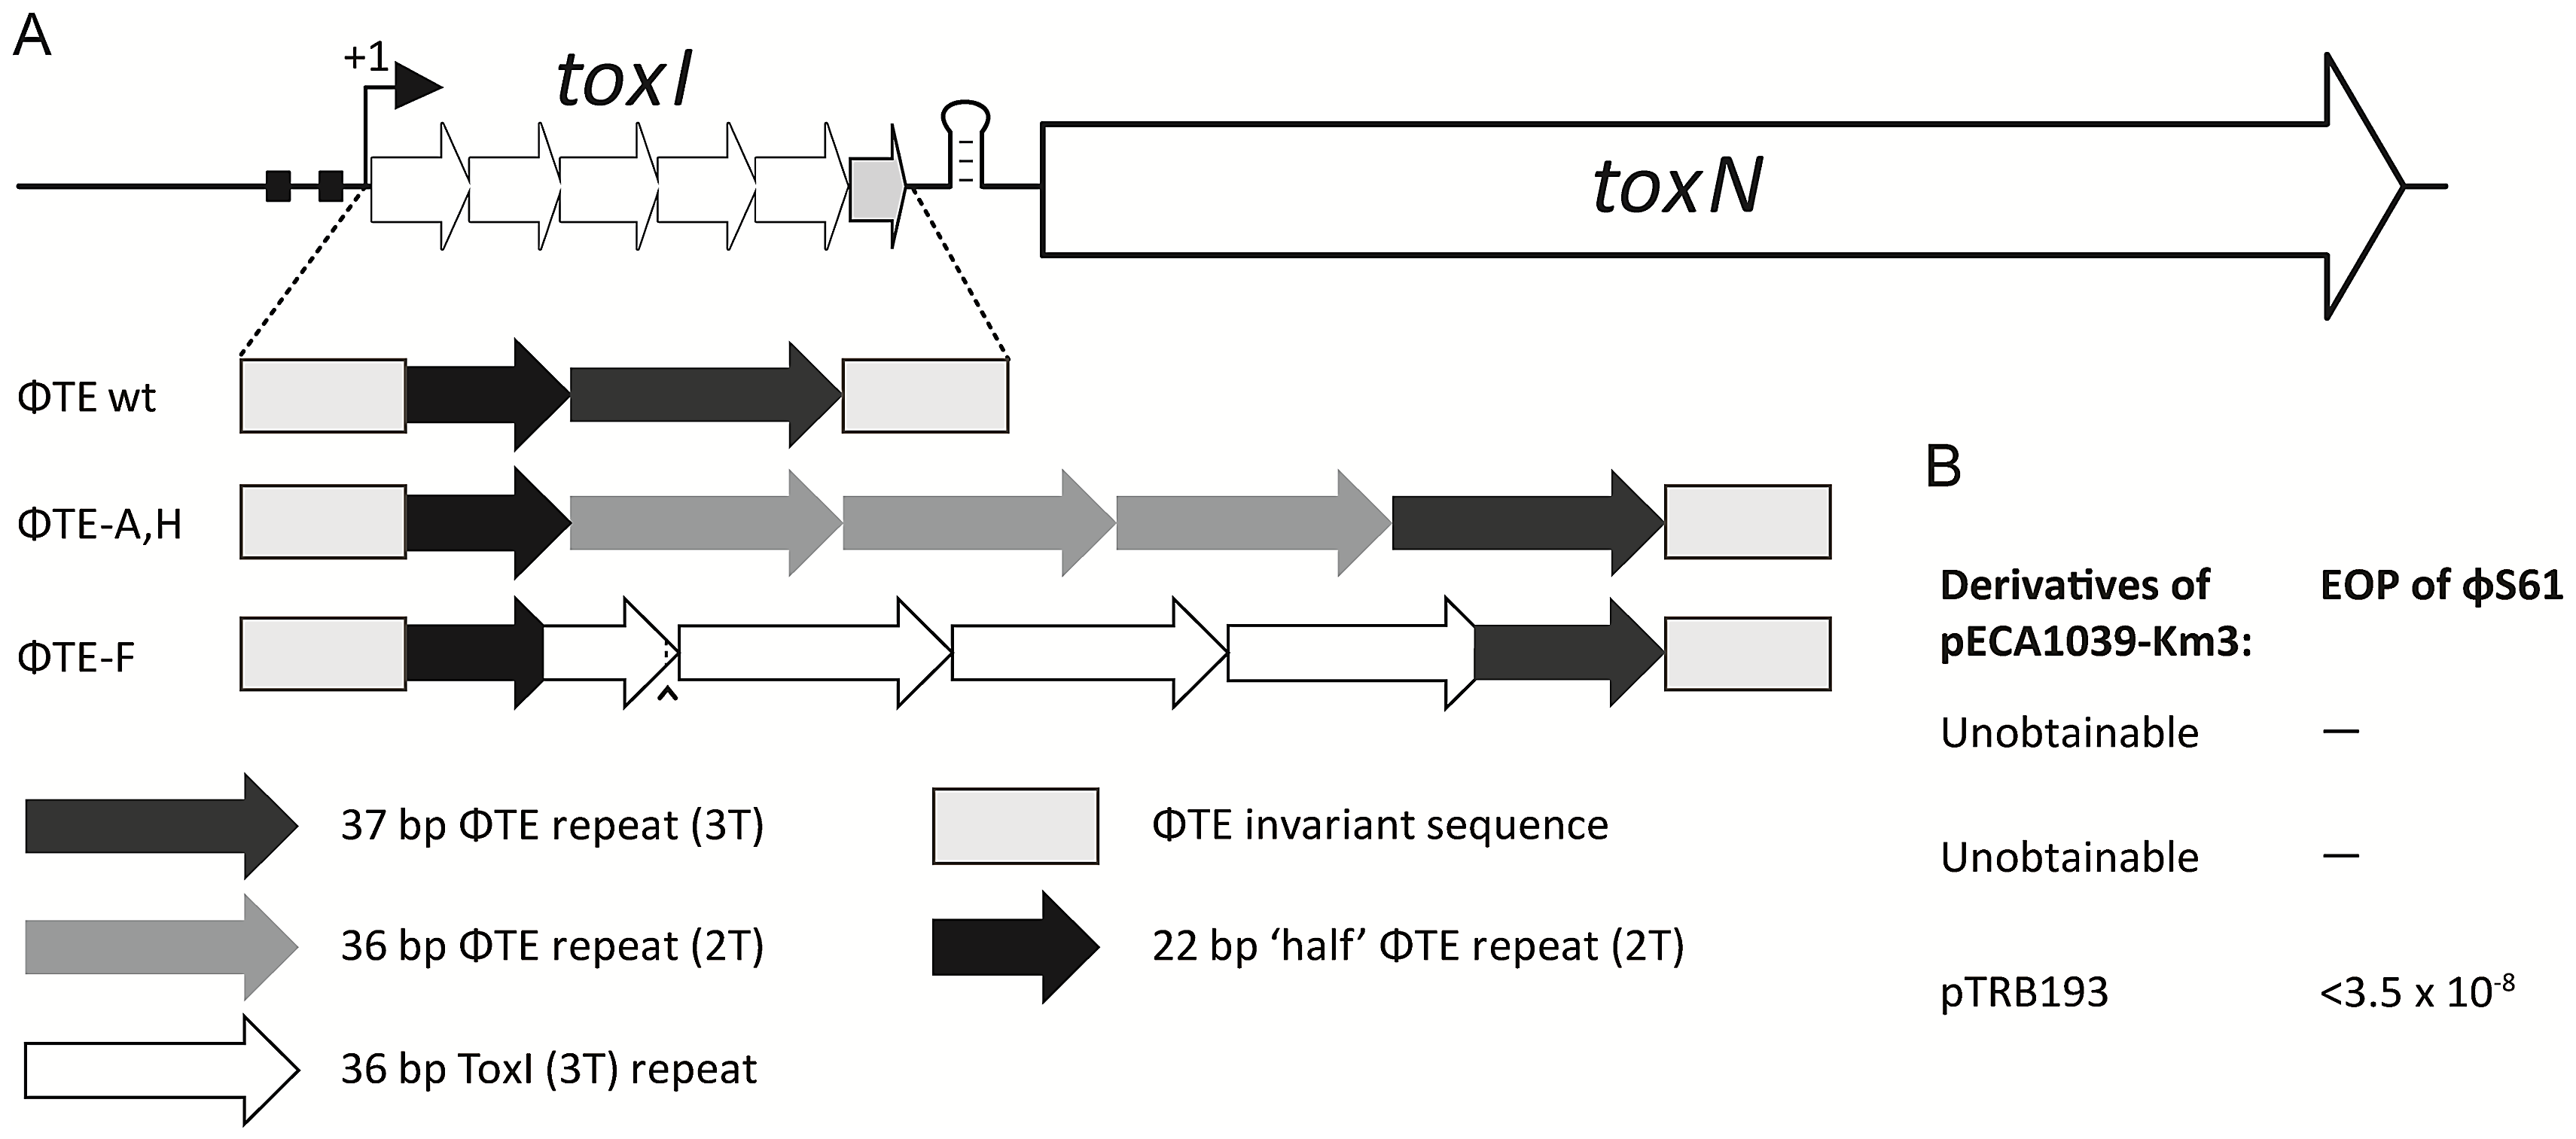 Only the recombinant ΦTE-F escape locus can replace ToxI in the native ToxIN locus.